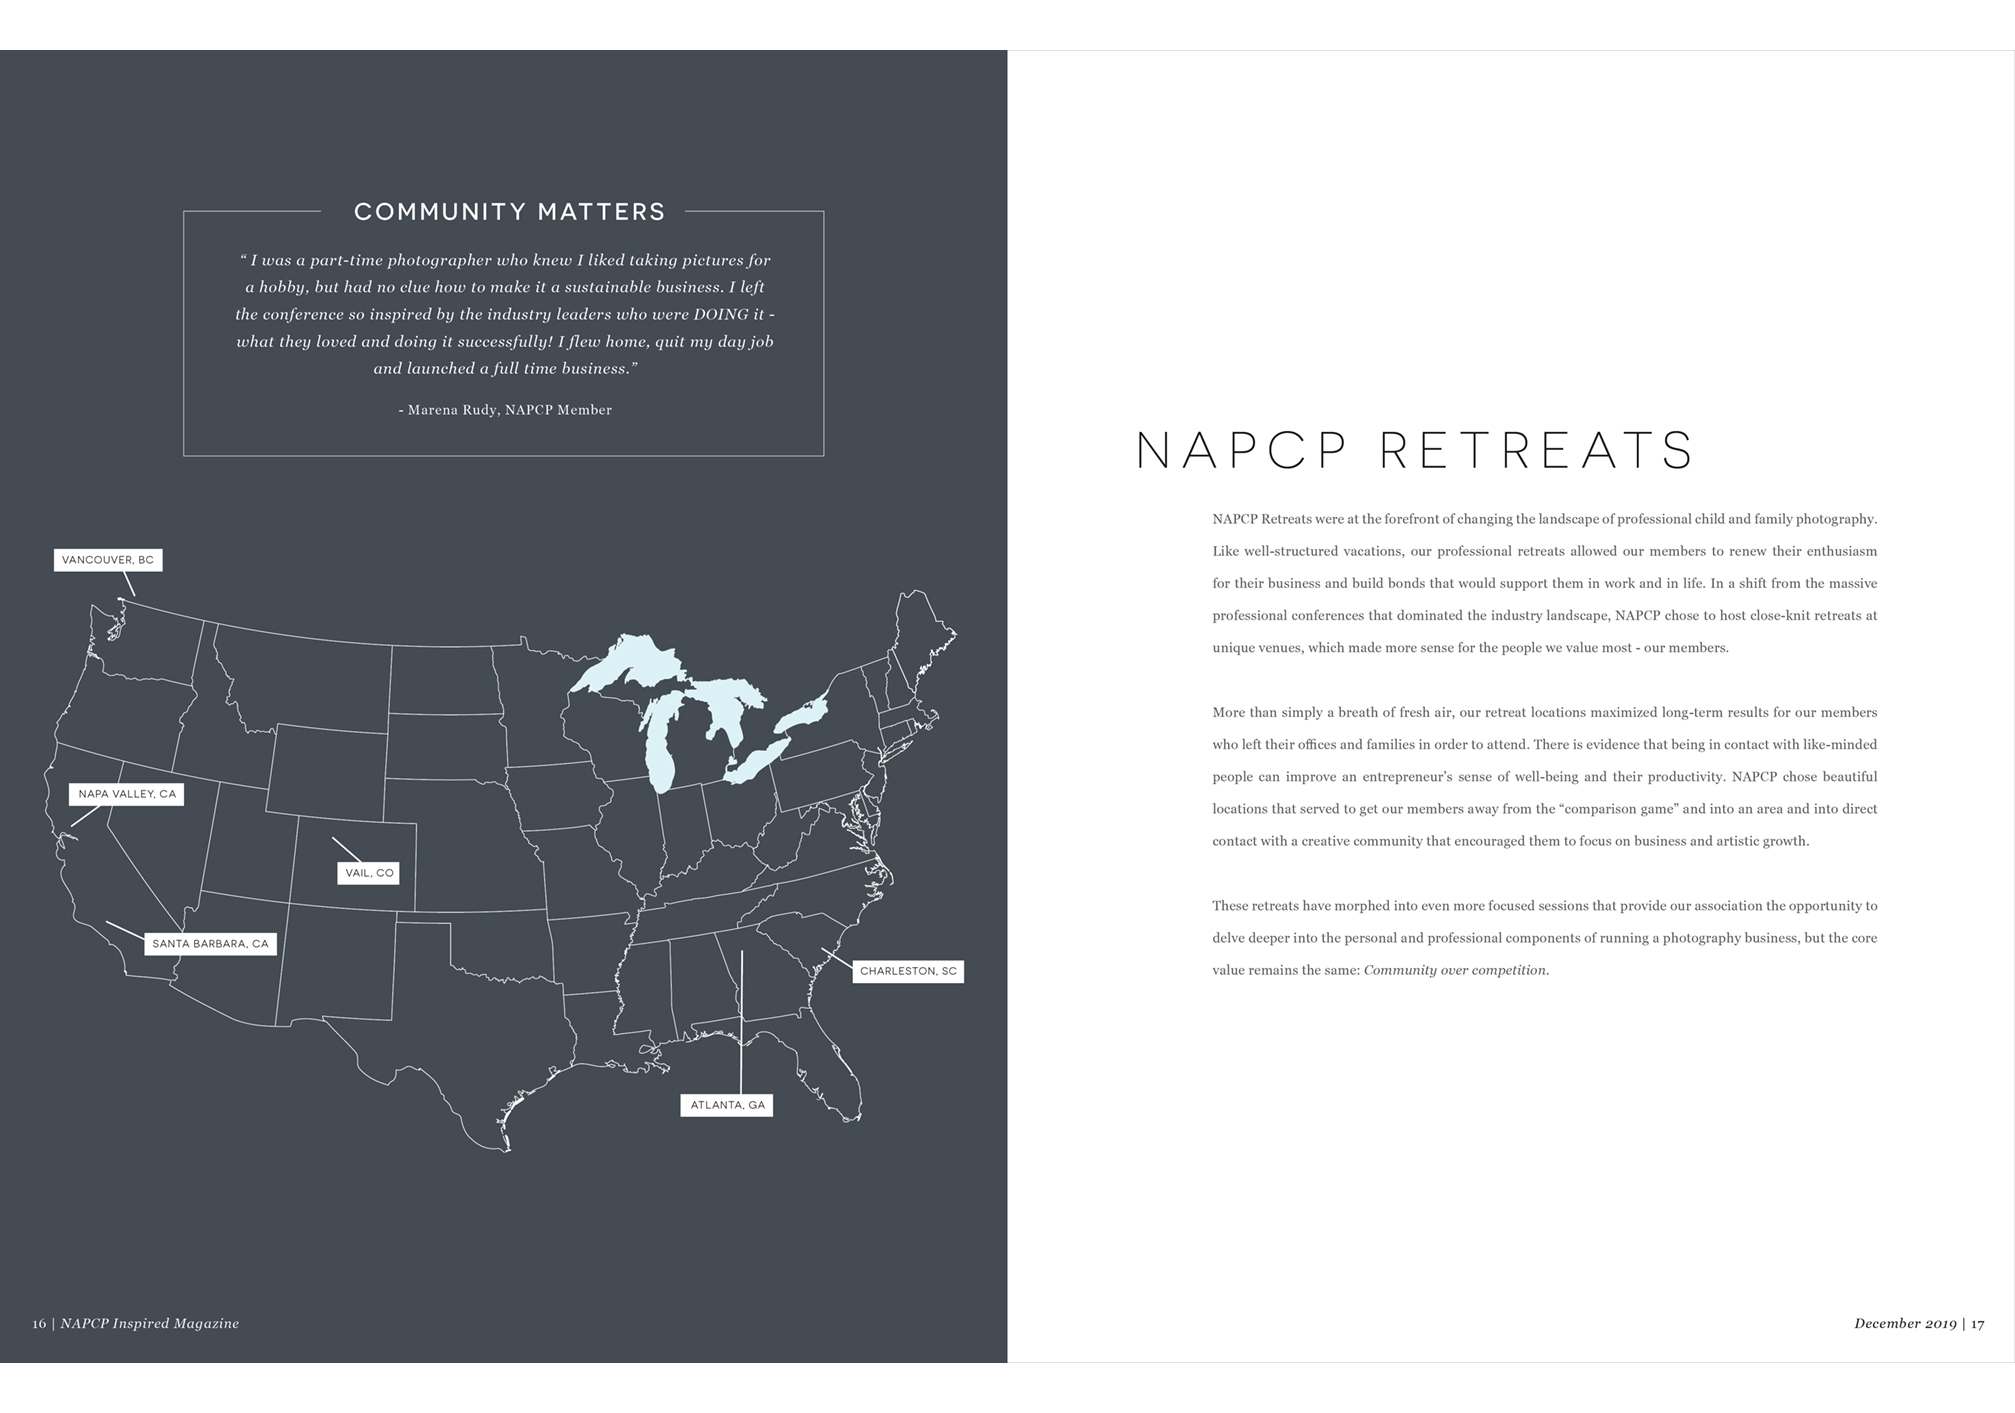 NAPCP Retreats